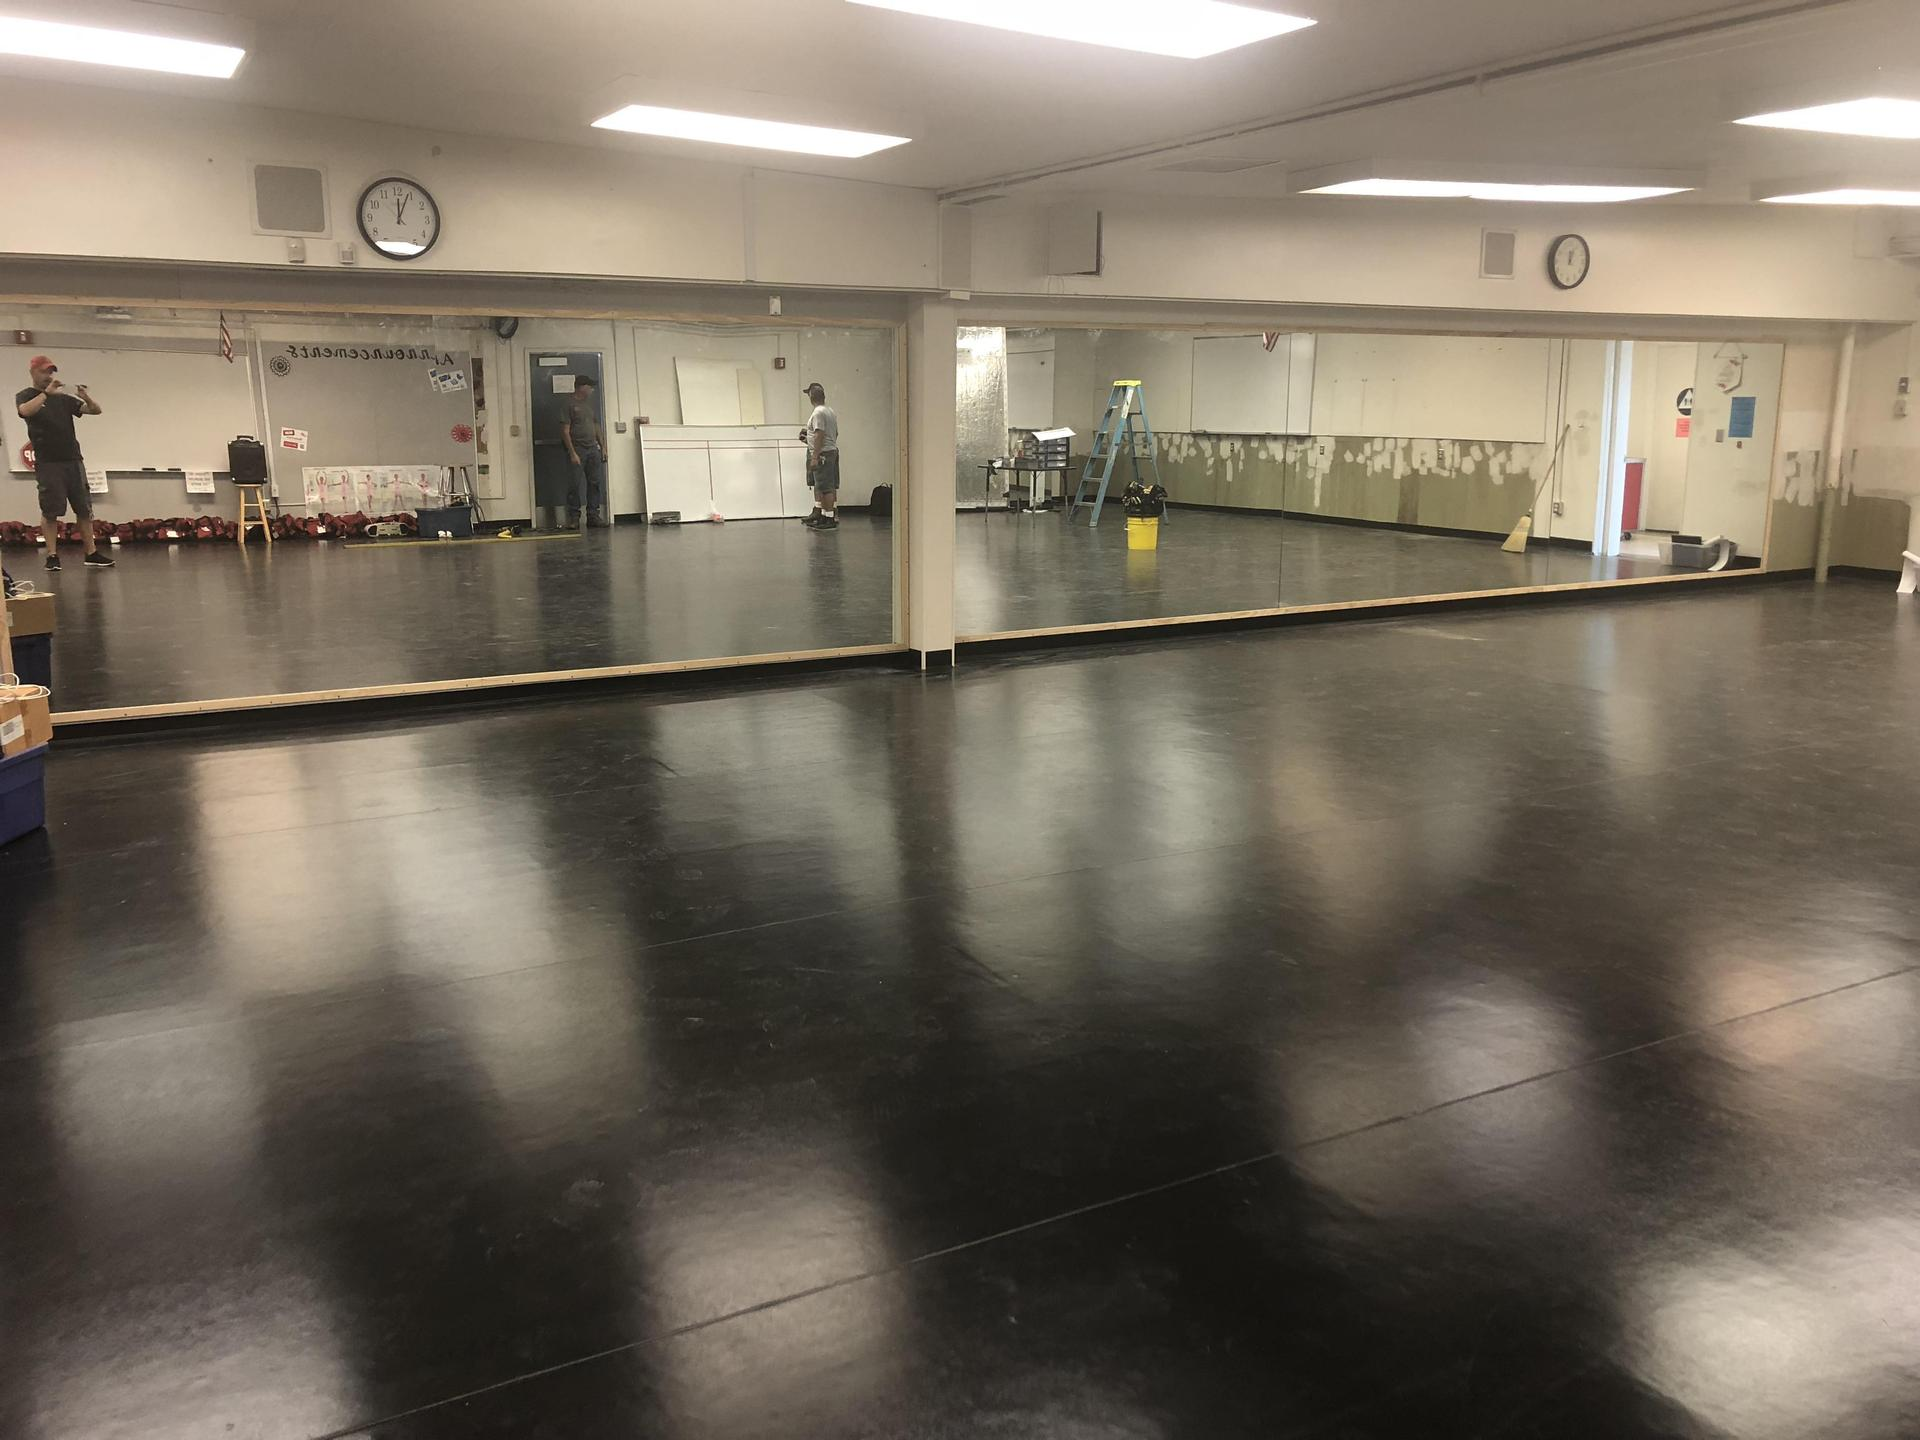 The new dance floor and mirrors are done at Nicolas....time to dance!